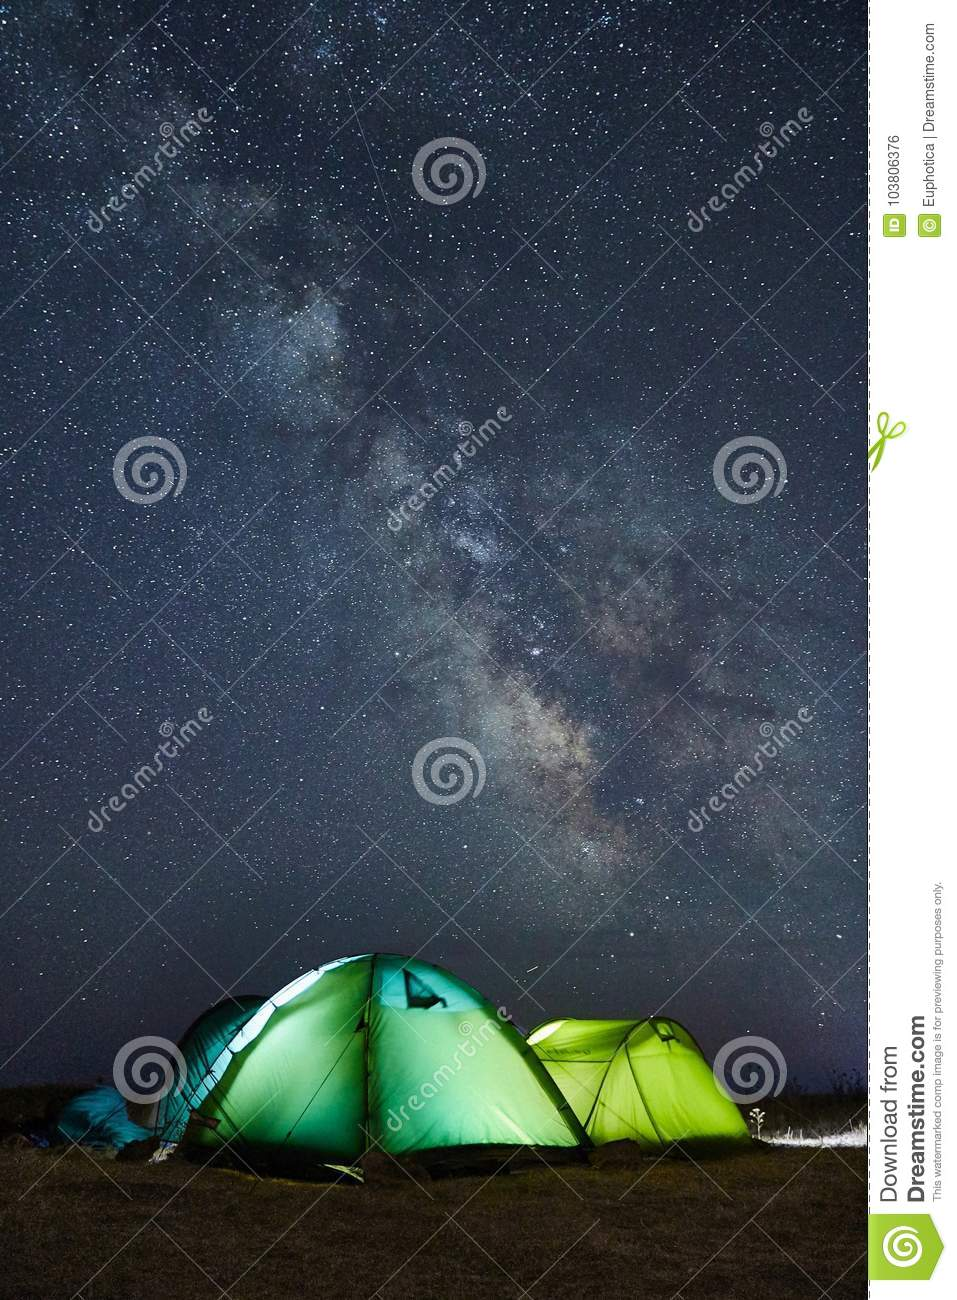 Camping under the stars with green illuminated tents, visible Milky Way galaxy, clear sky, long exposure